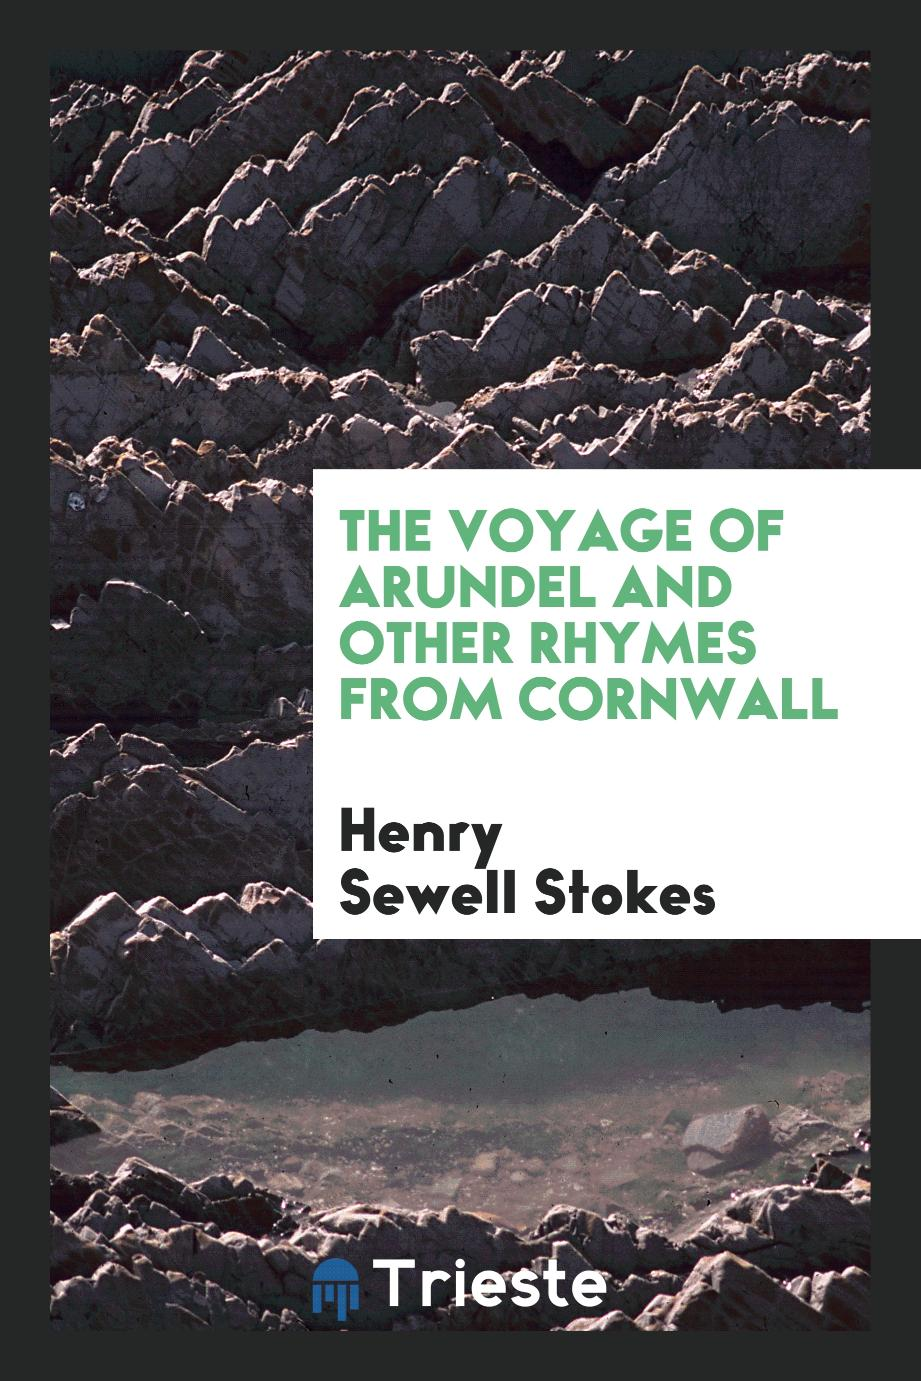 The Voyage of Arundel and Other Rhymes from Cornwall